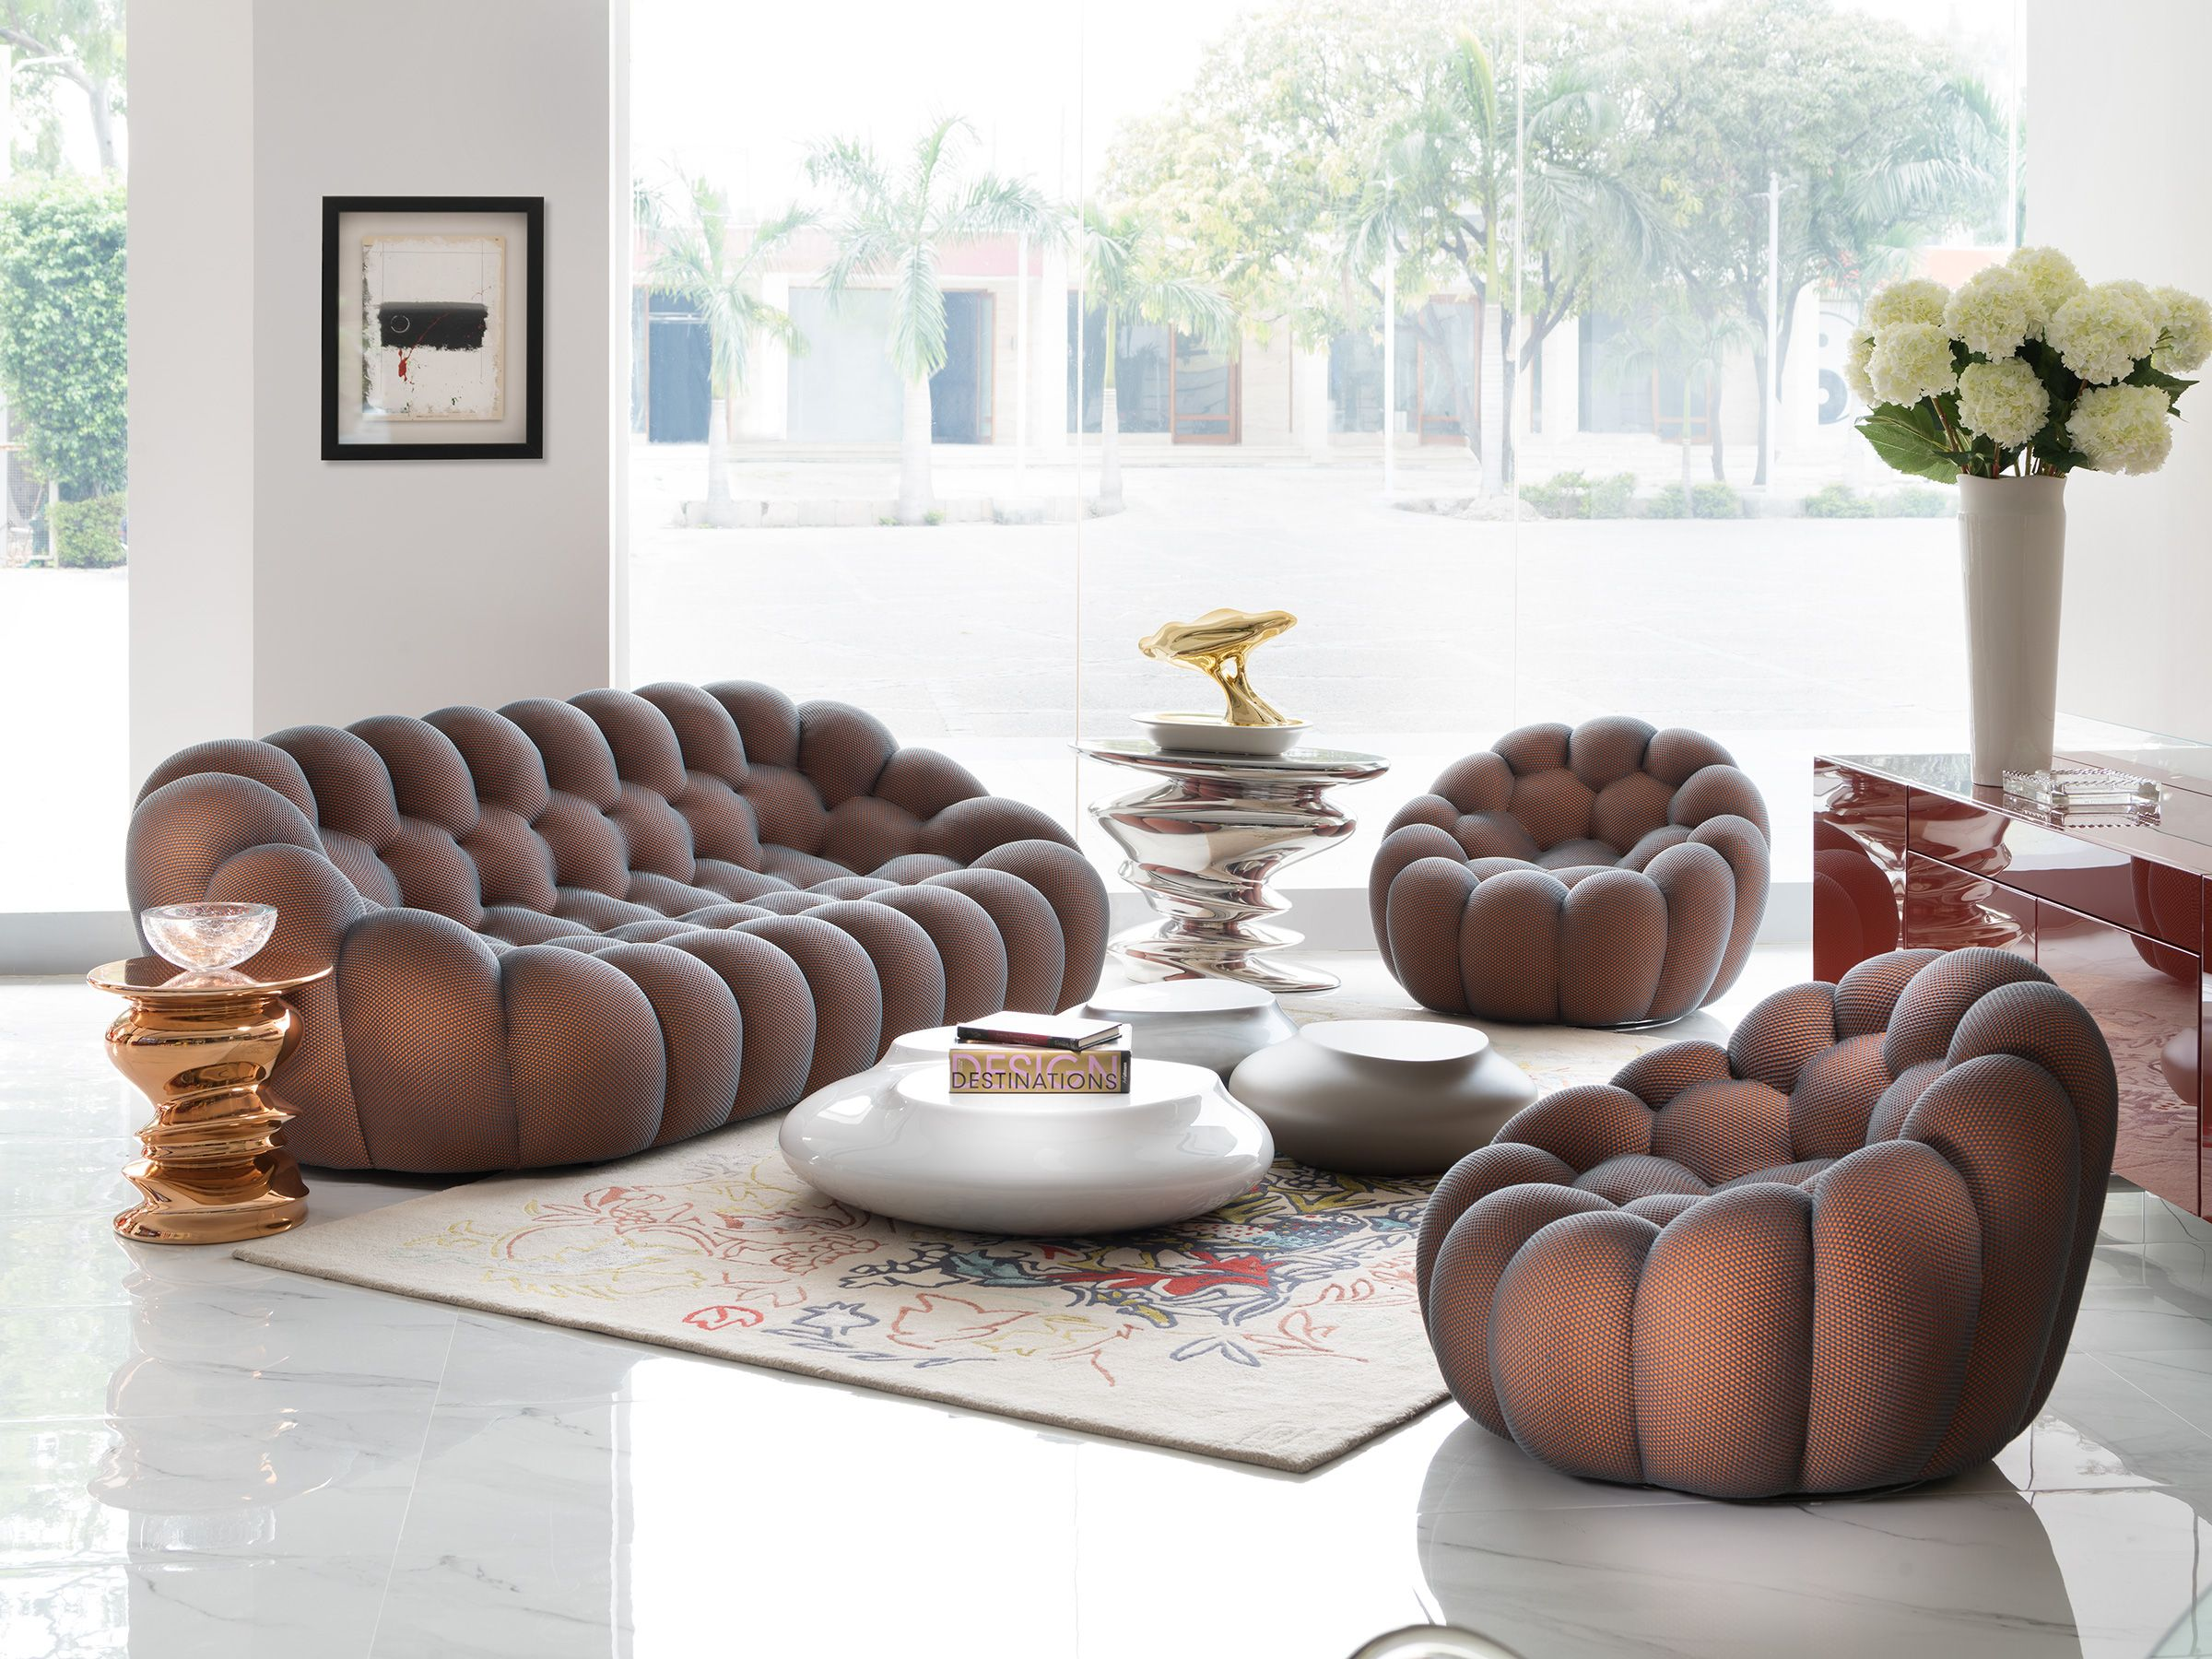 roche bobois new delhi india bubble sofa showroom display me gusta pinterest showroom. Black Bedroom Furniture Sets. Home Design Ideas